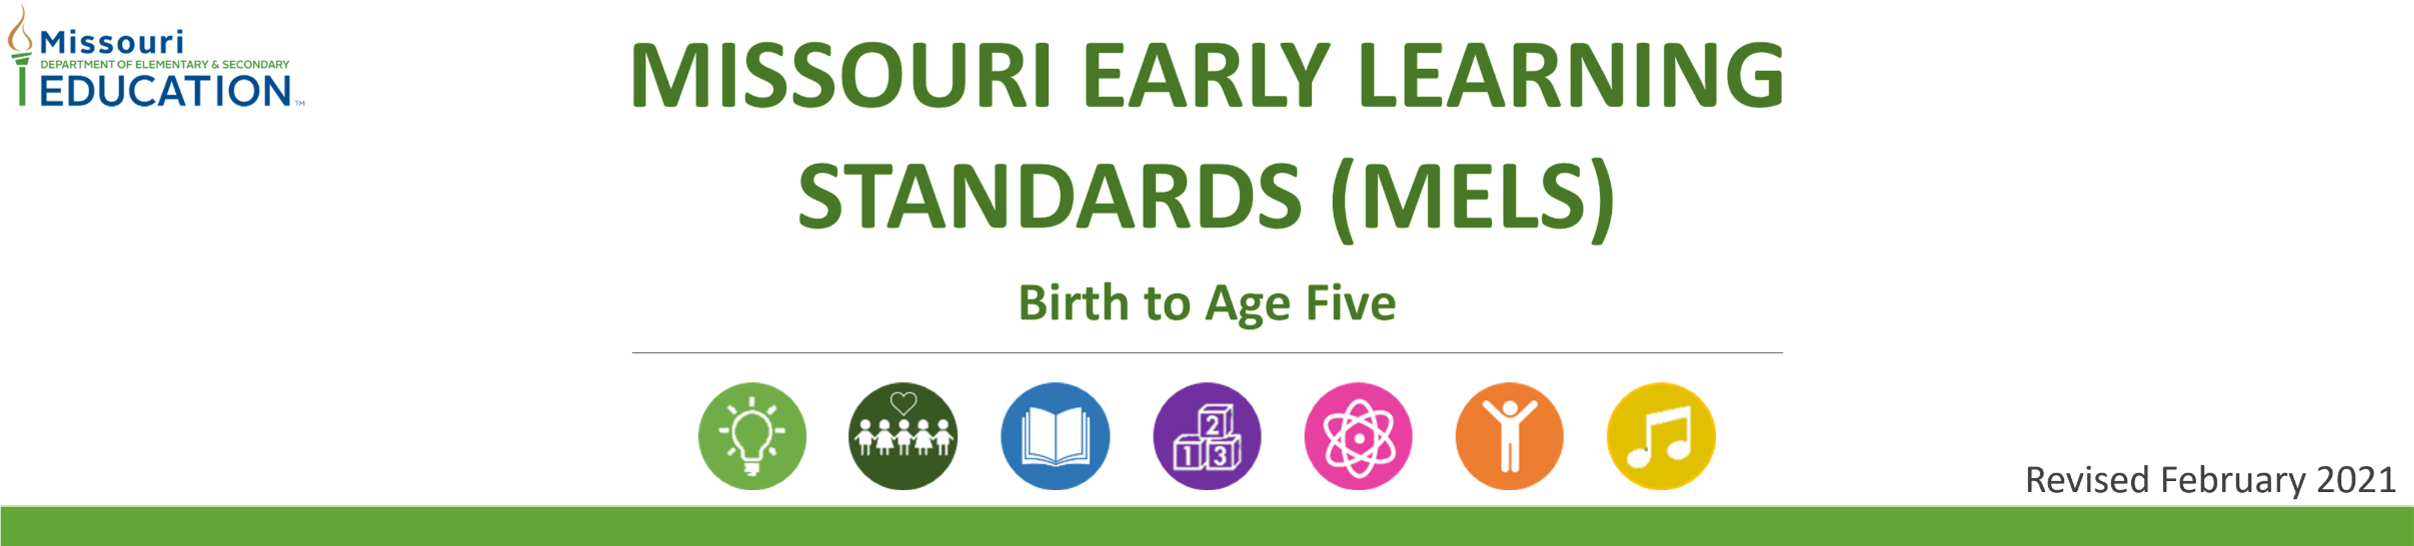 Missouri Early Learning Standards